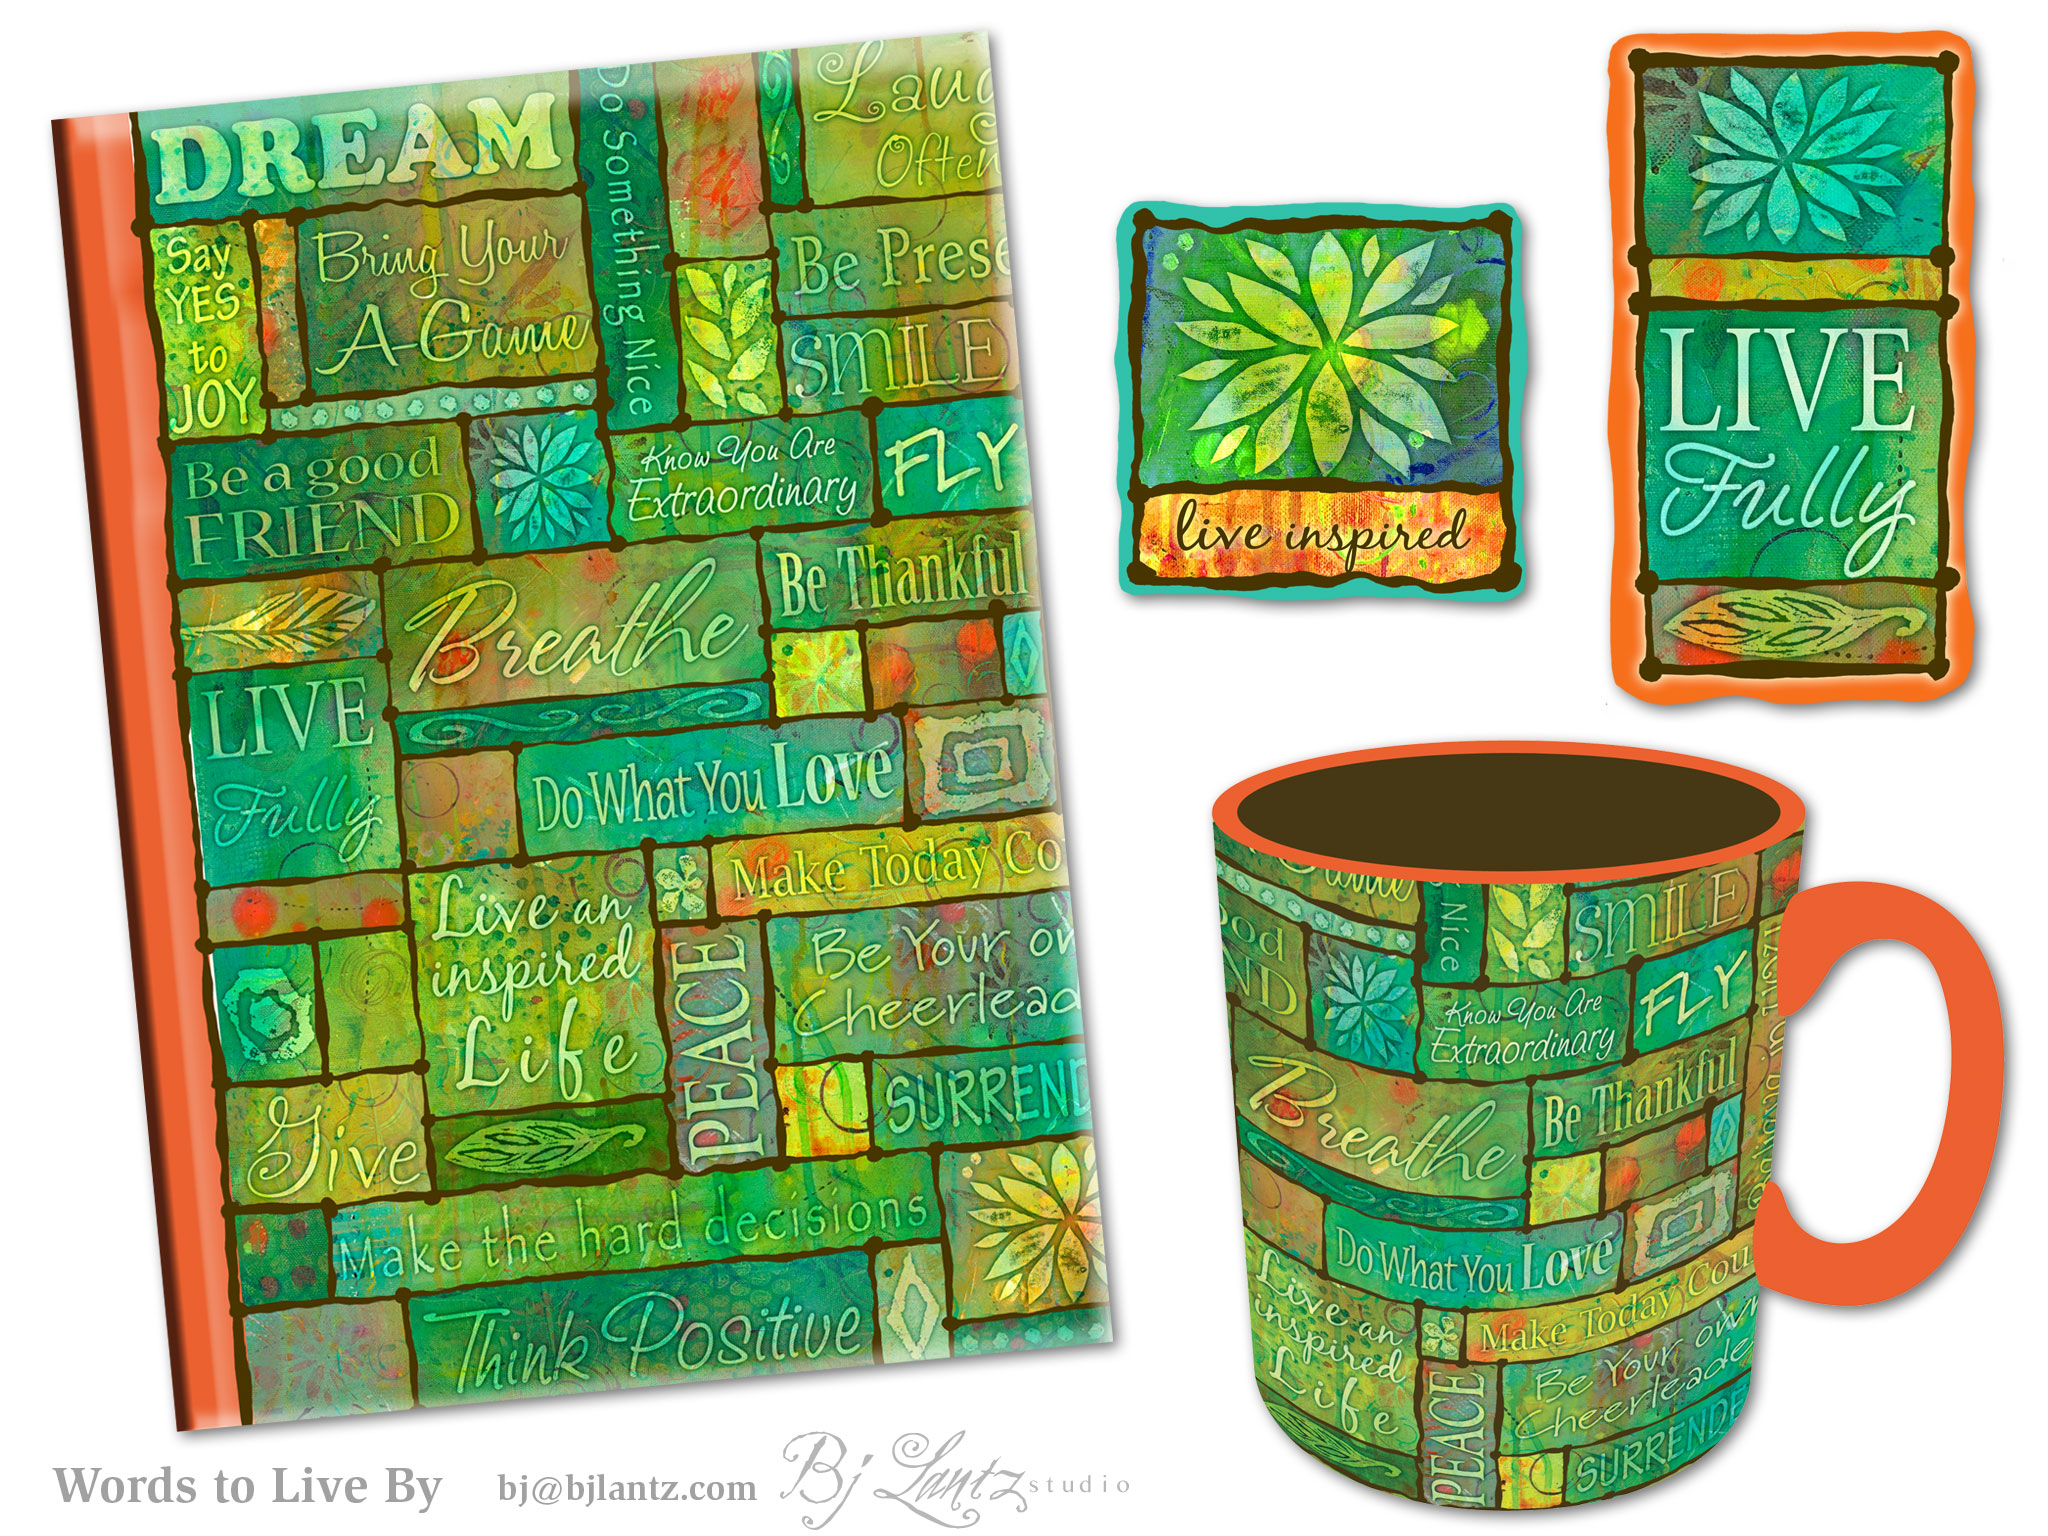 WordsToLiveBy-BJ-Lantz_portfolio.jpg